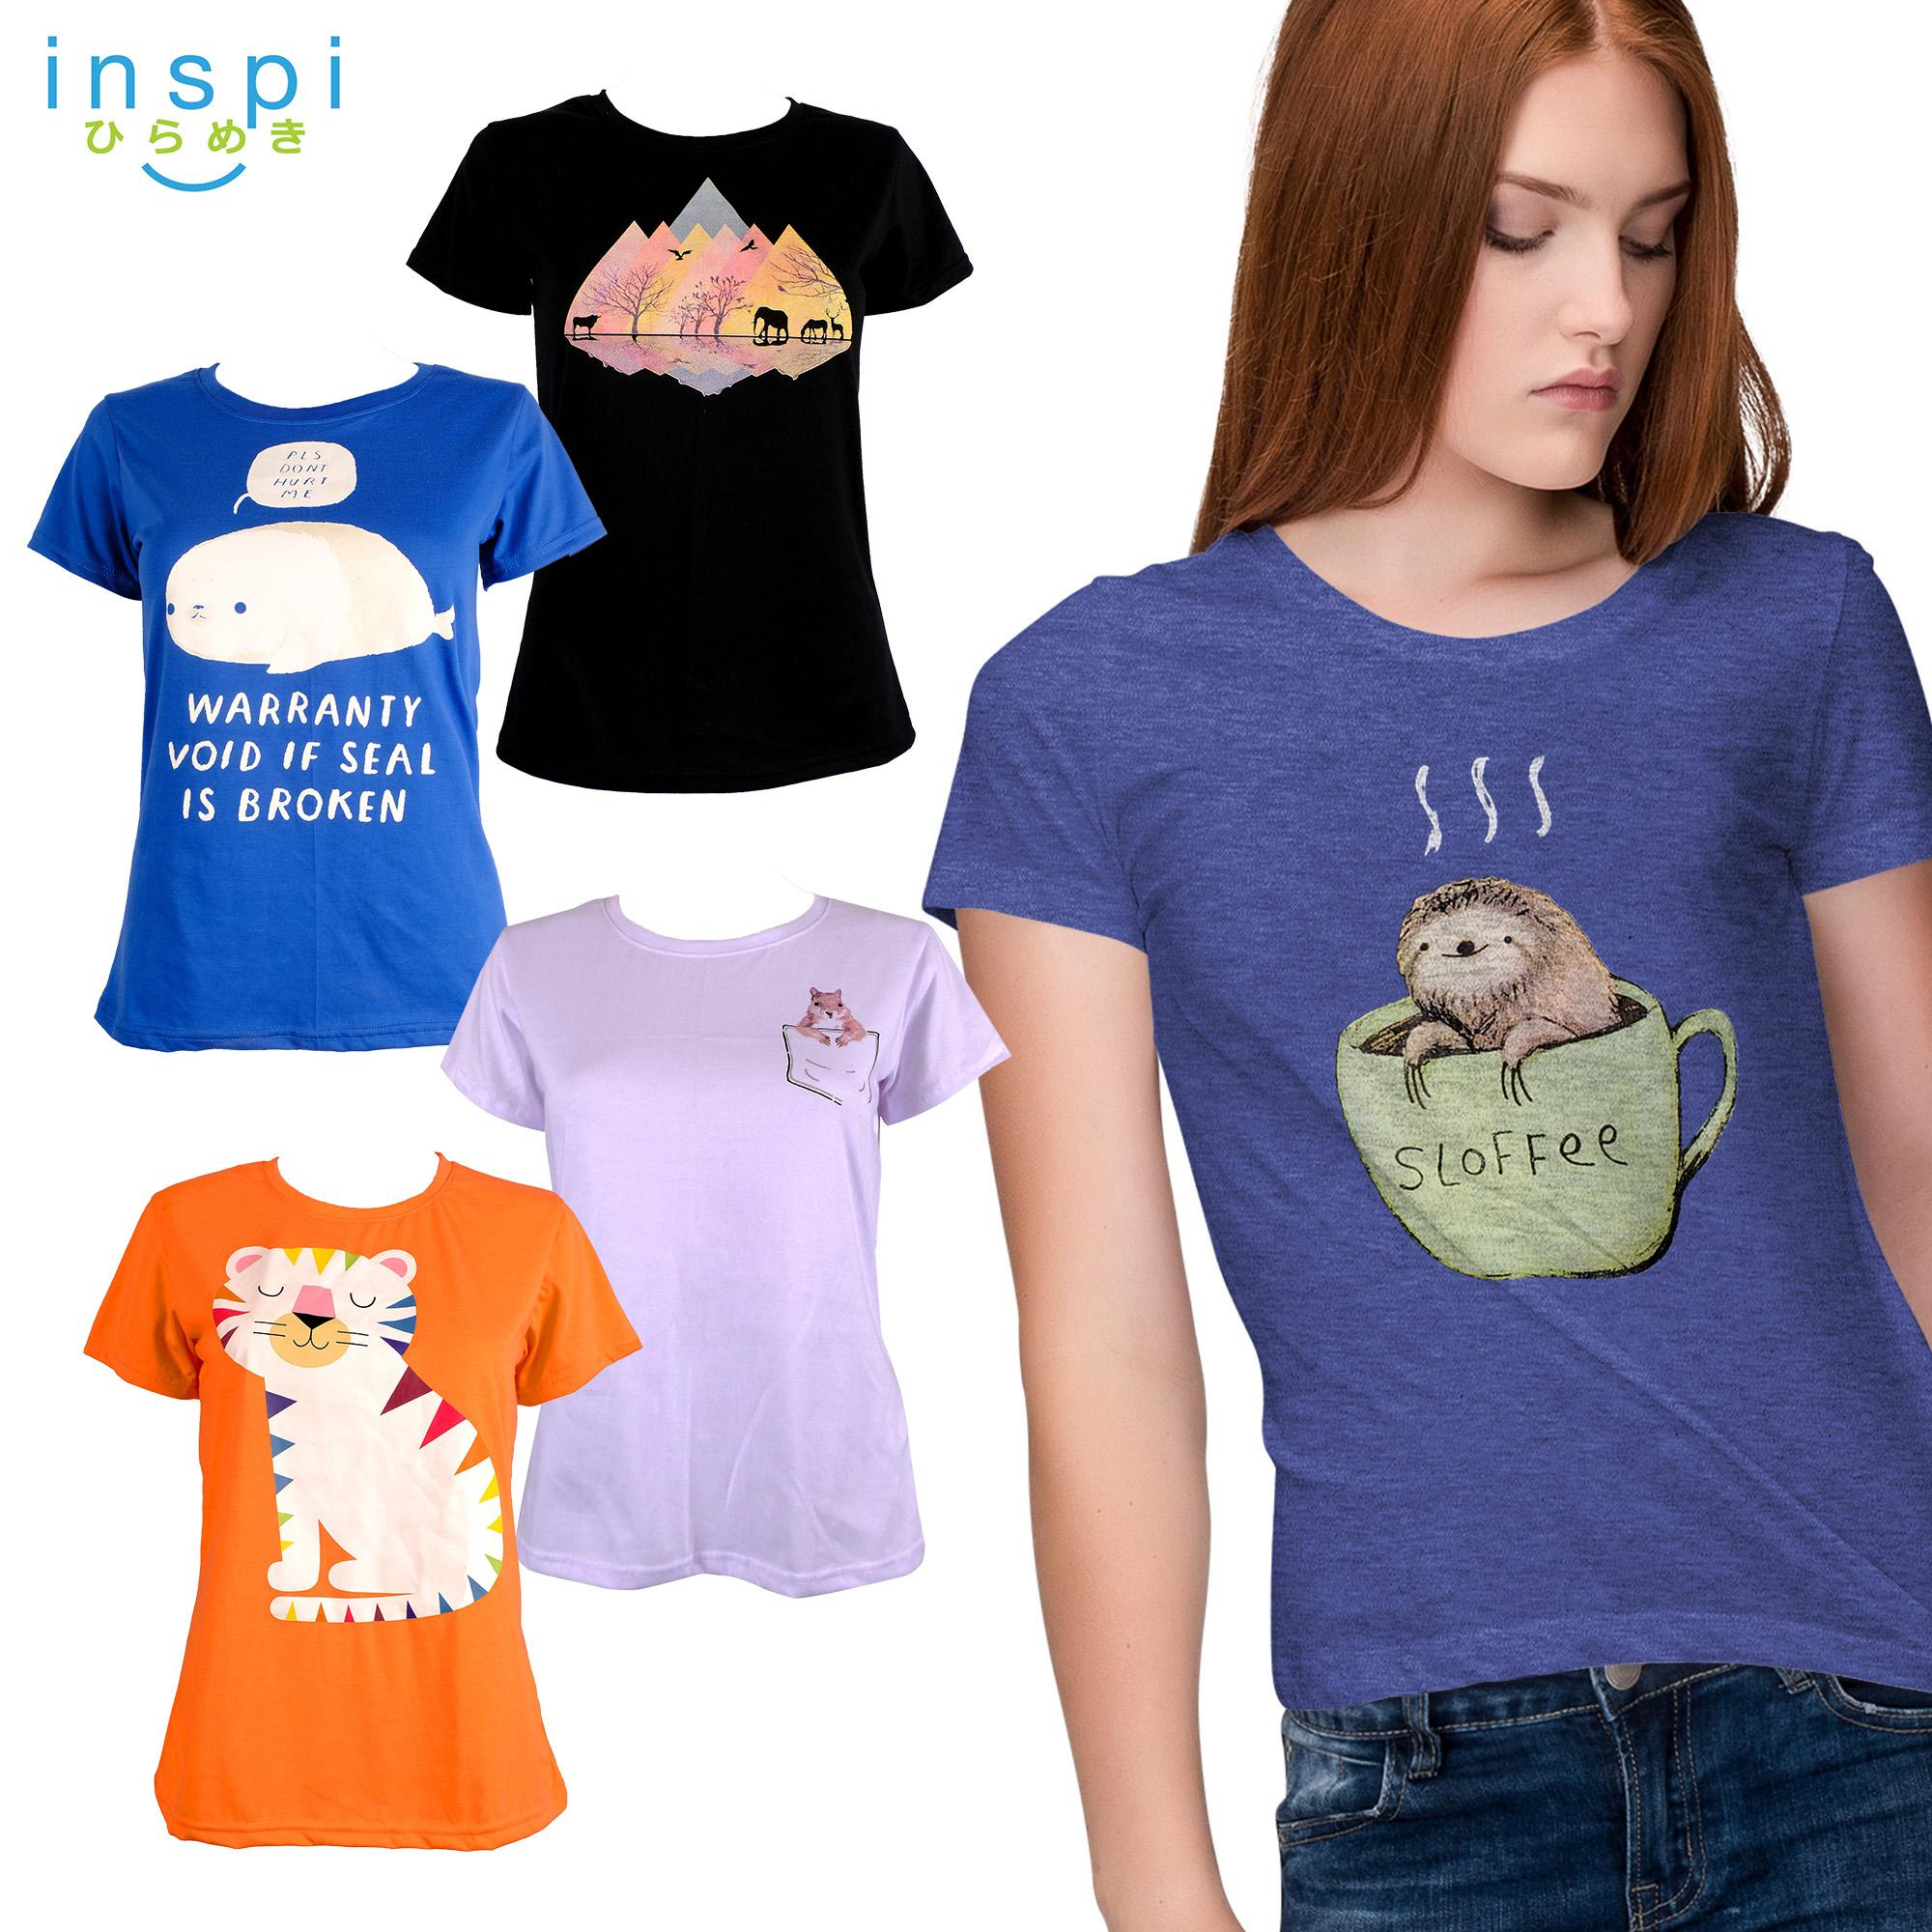 e3c1997a9 INSPI Tees Ladies Pet Collection tshirt printed graphic tee Ladies t shirt  shirts women tshirts for